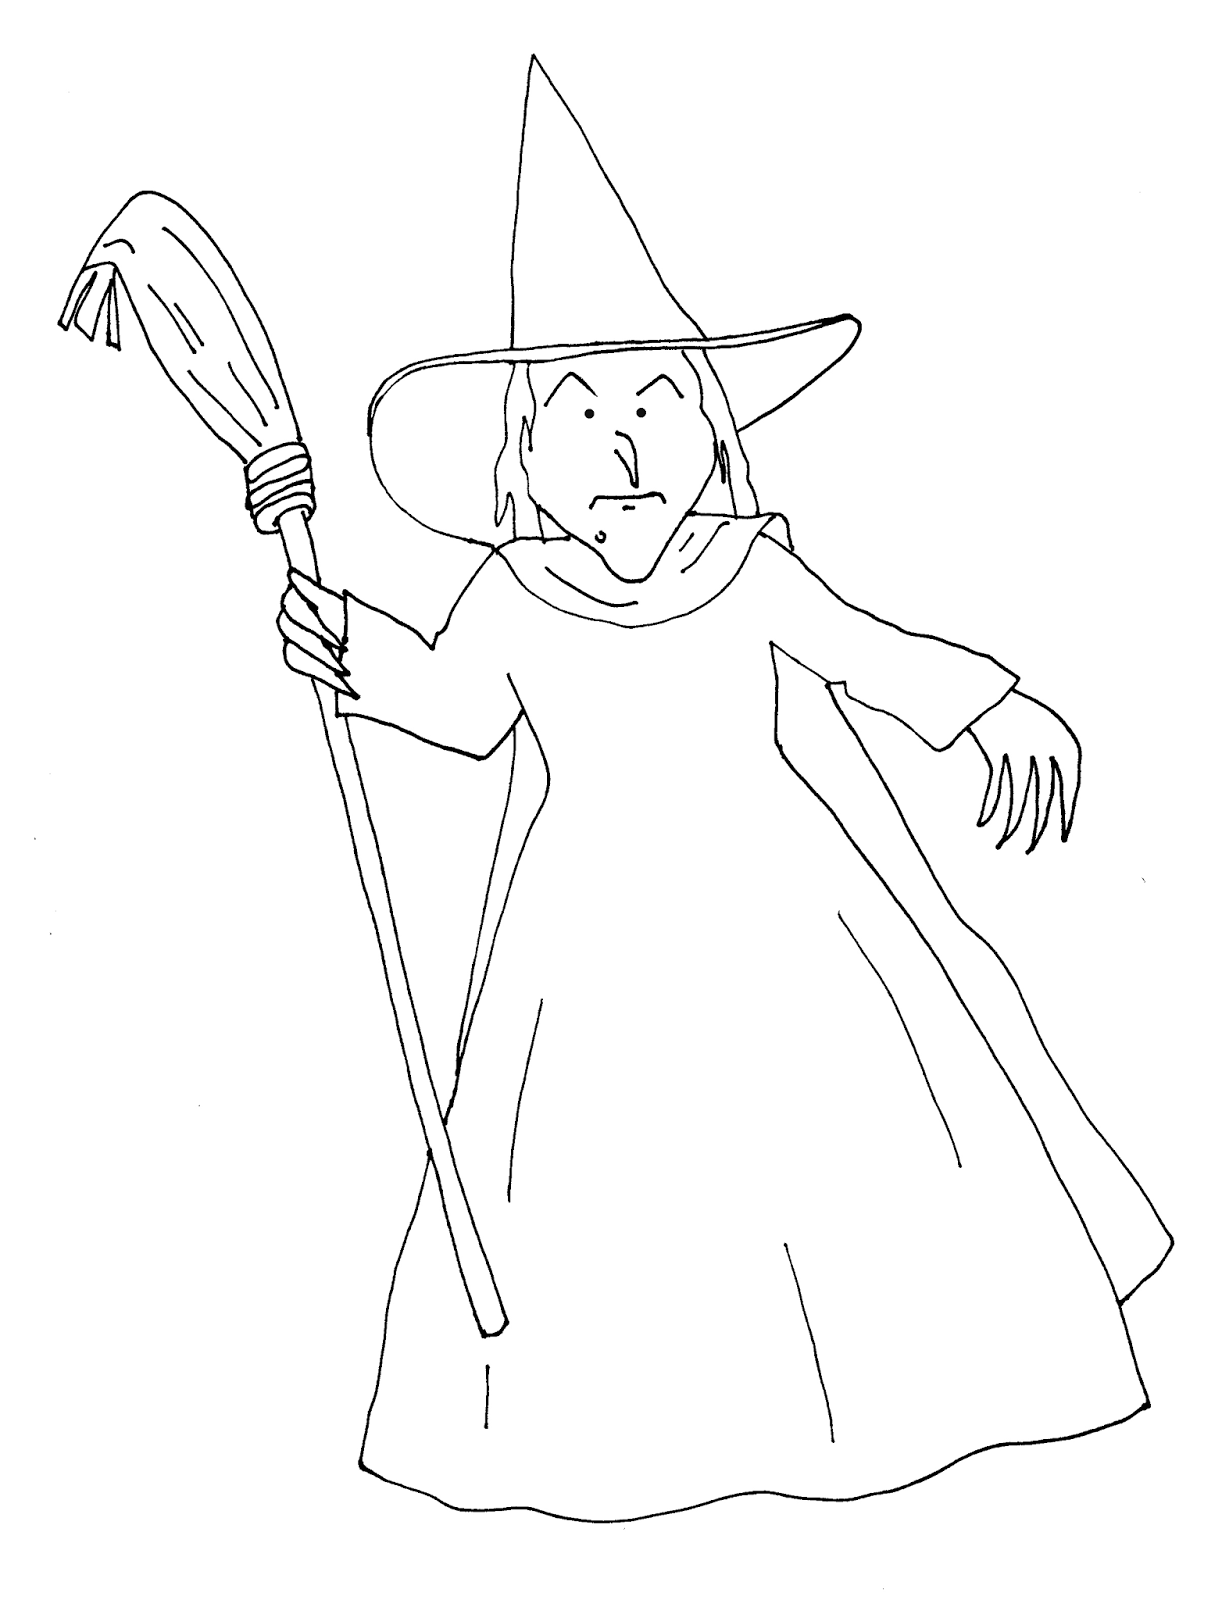 wicked witch coloring pages - photo#12